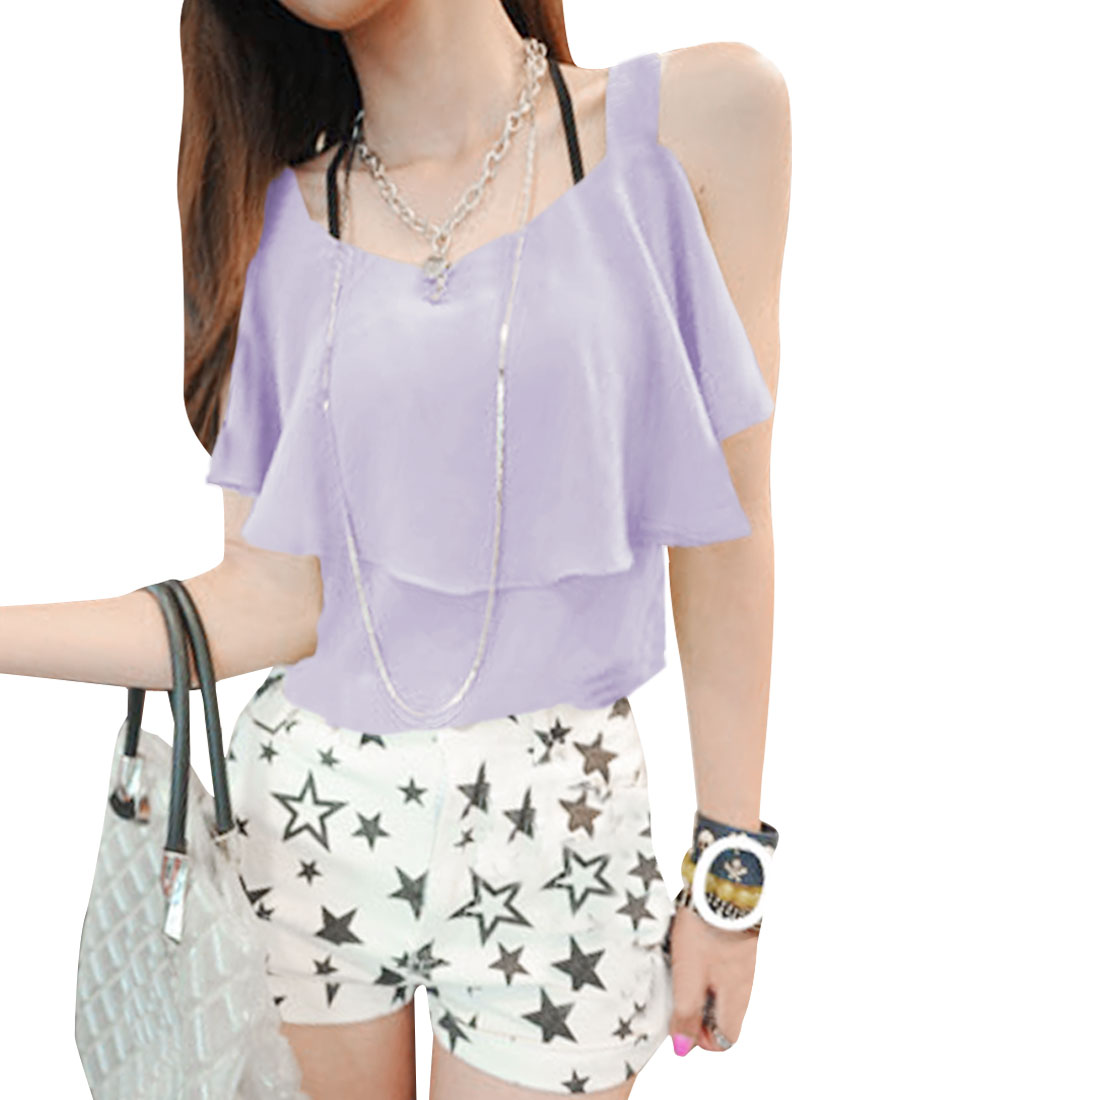 Lady Summer Soft Semi-sheer Flouncing Lavender Chiffon Top XS